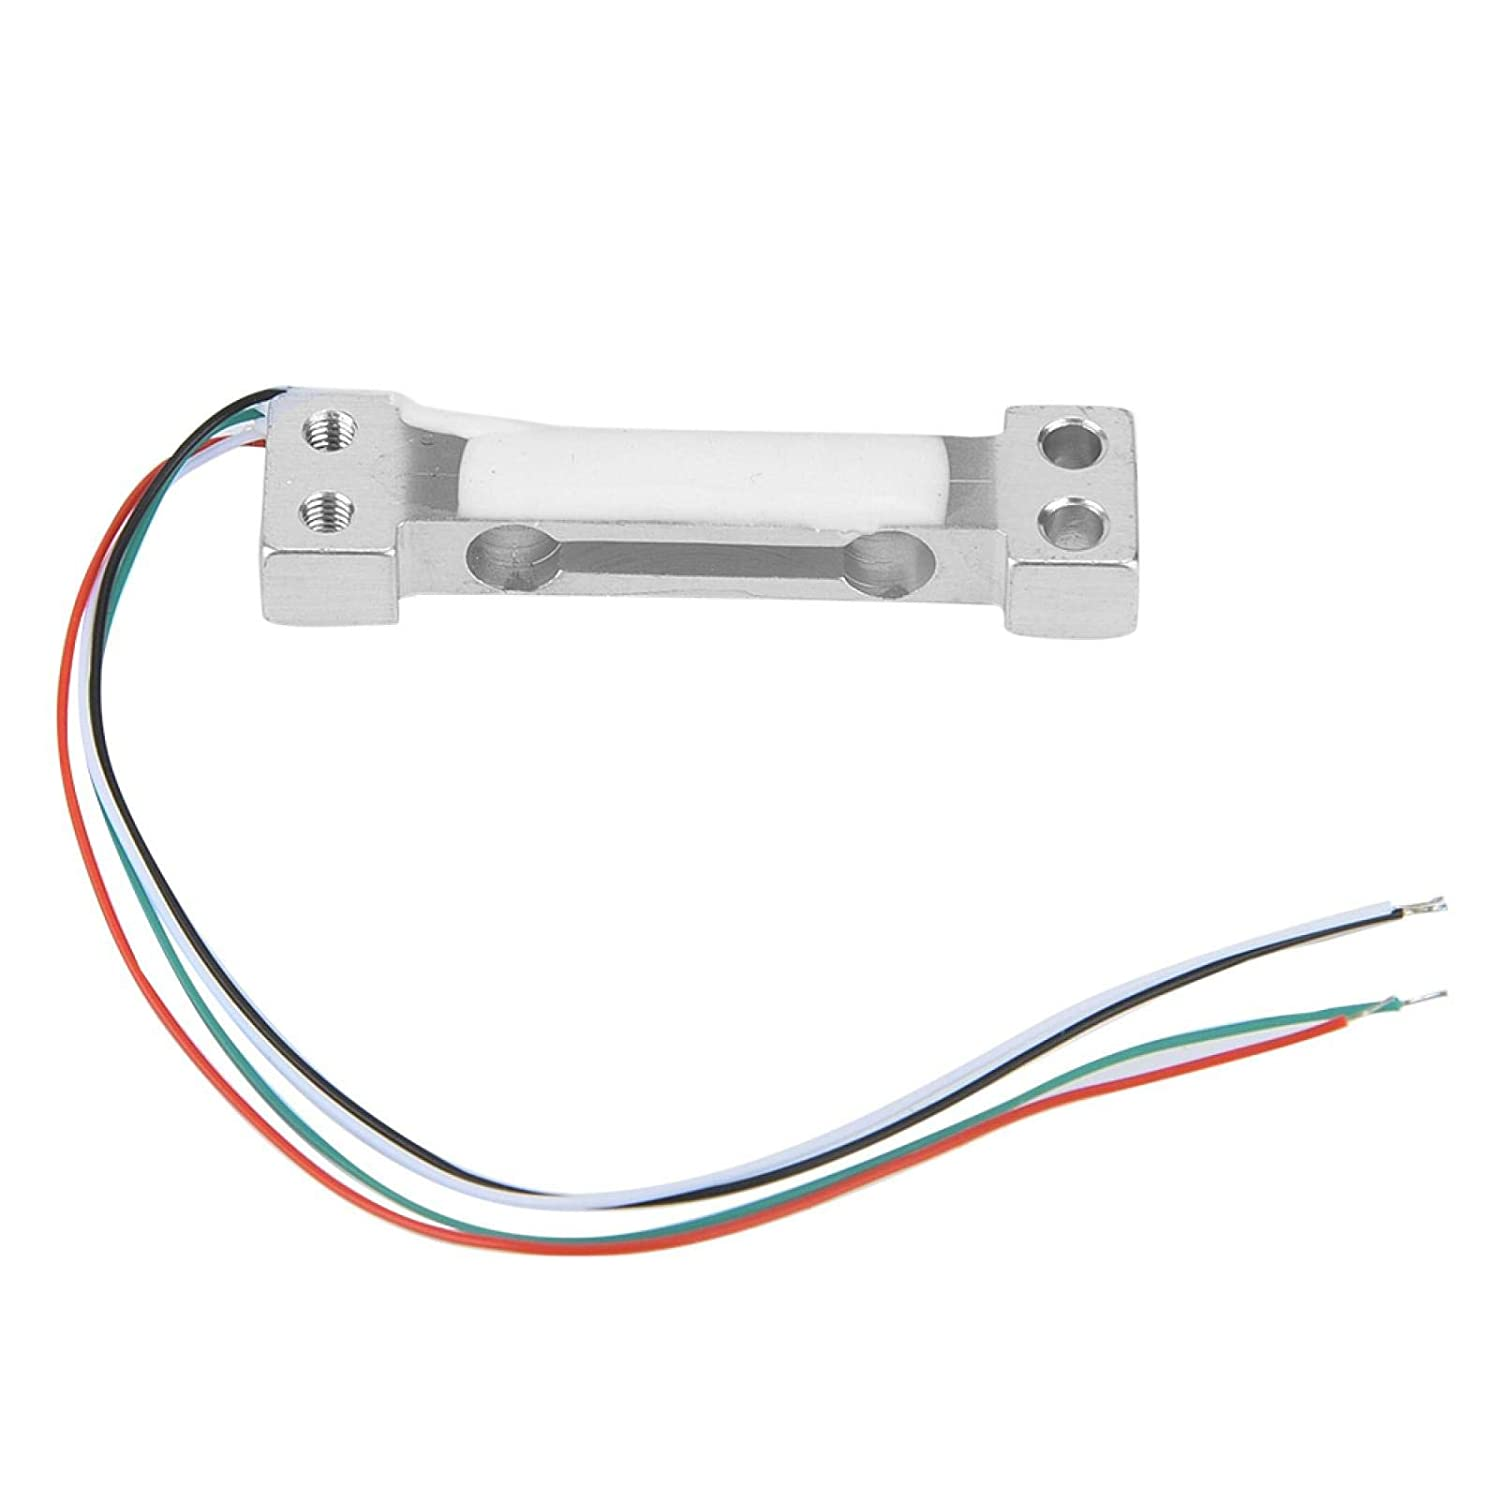 Weighting Sensor 0-100g Parallel Beam Save money Scale Cell 5 ☆ popular Electronic Load